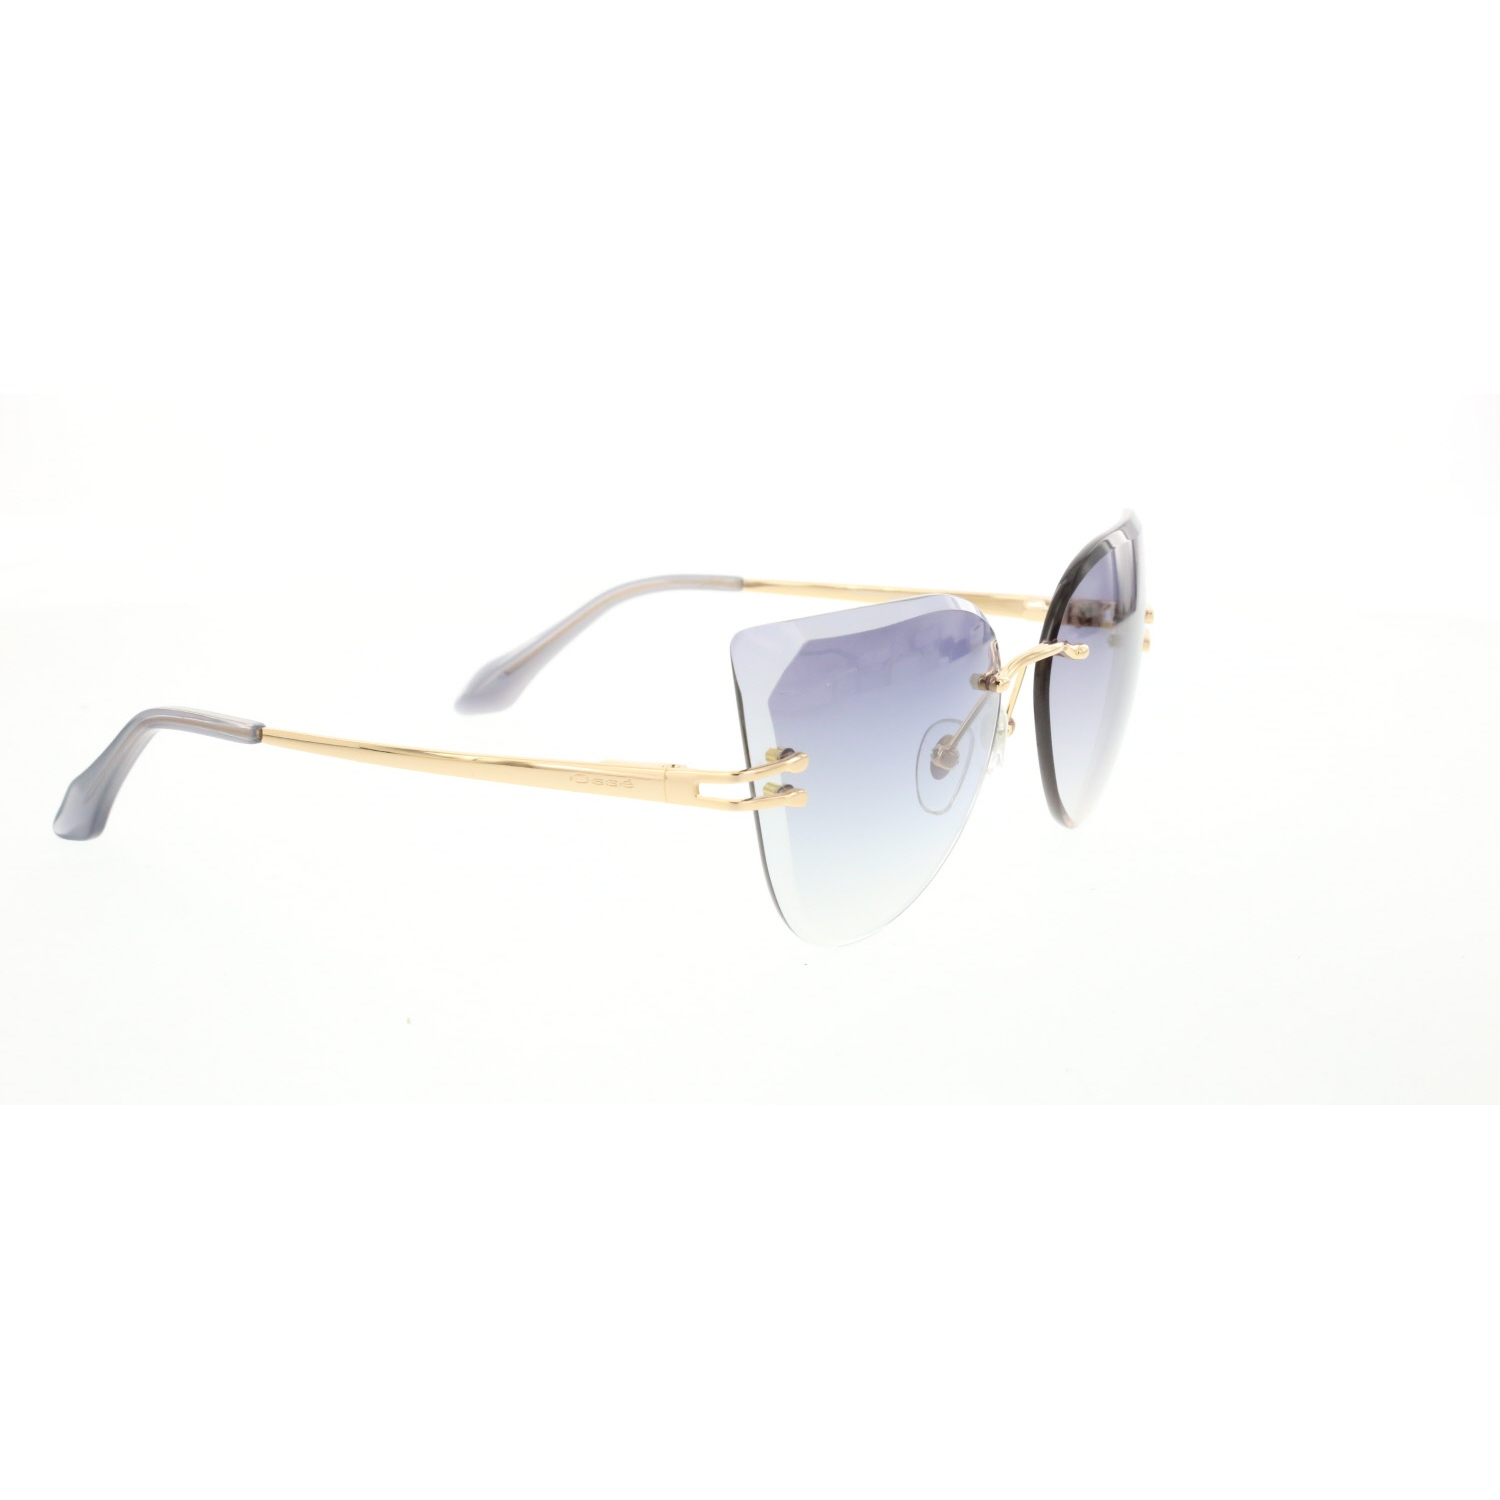 Women's sunglasses os 2719 02 facet gold polycarbonate butterfly cat eye 61-17-140 osse